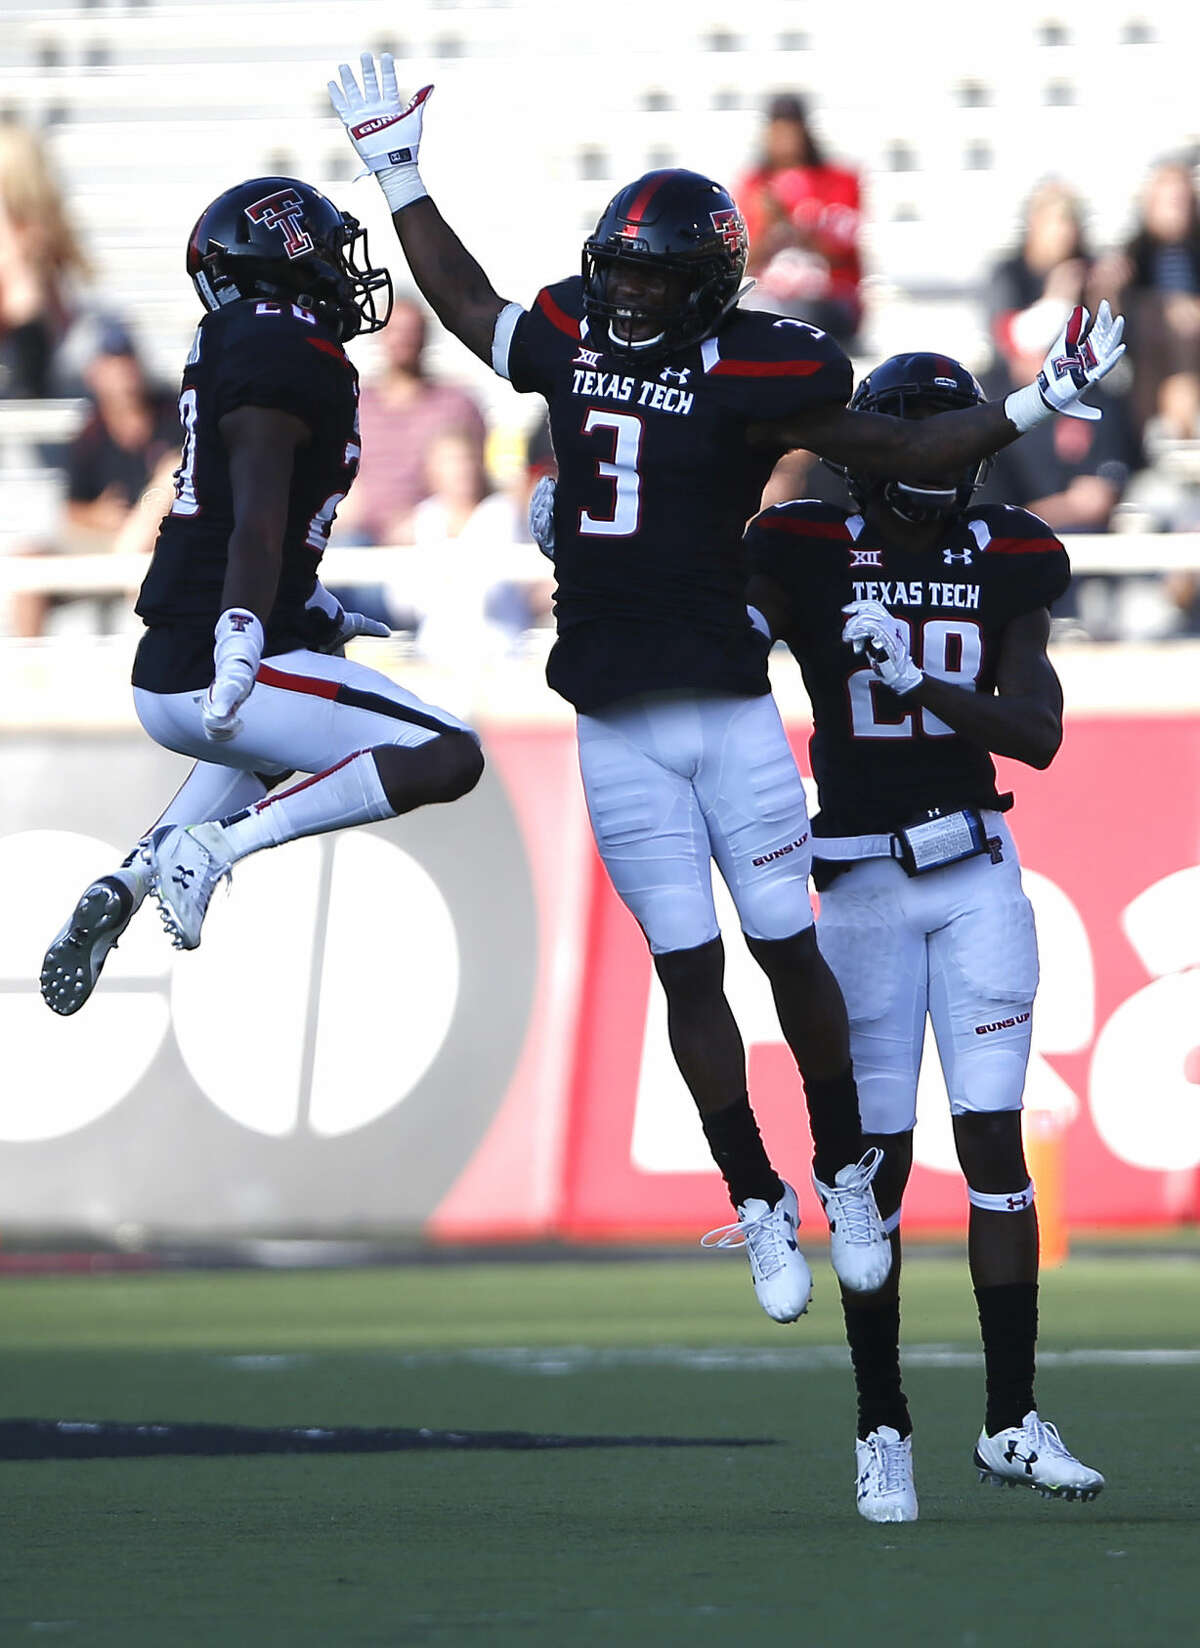 Texas Tech's Tevin Madison (20), J. J. Gaines (3) and Paul Banks III (28) jump on the field against Iowa State, Saturday, Oct. 10, 2015, in Lubbock. Texas Tech won 66-31. (Allison Terry/Lubbock Avalanche-Journal via AP)